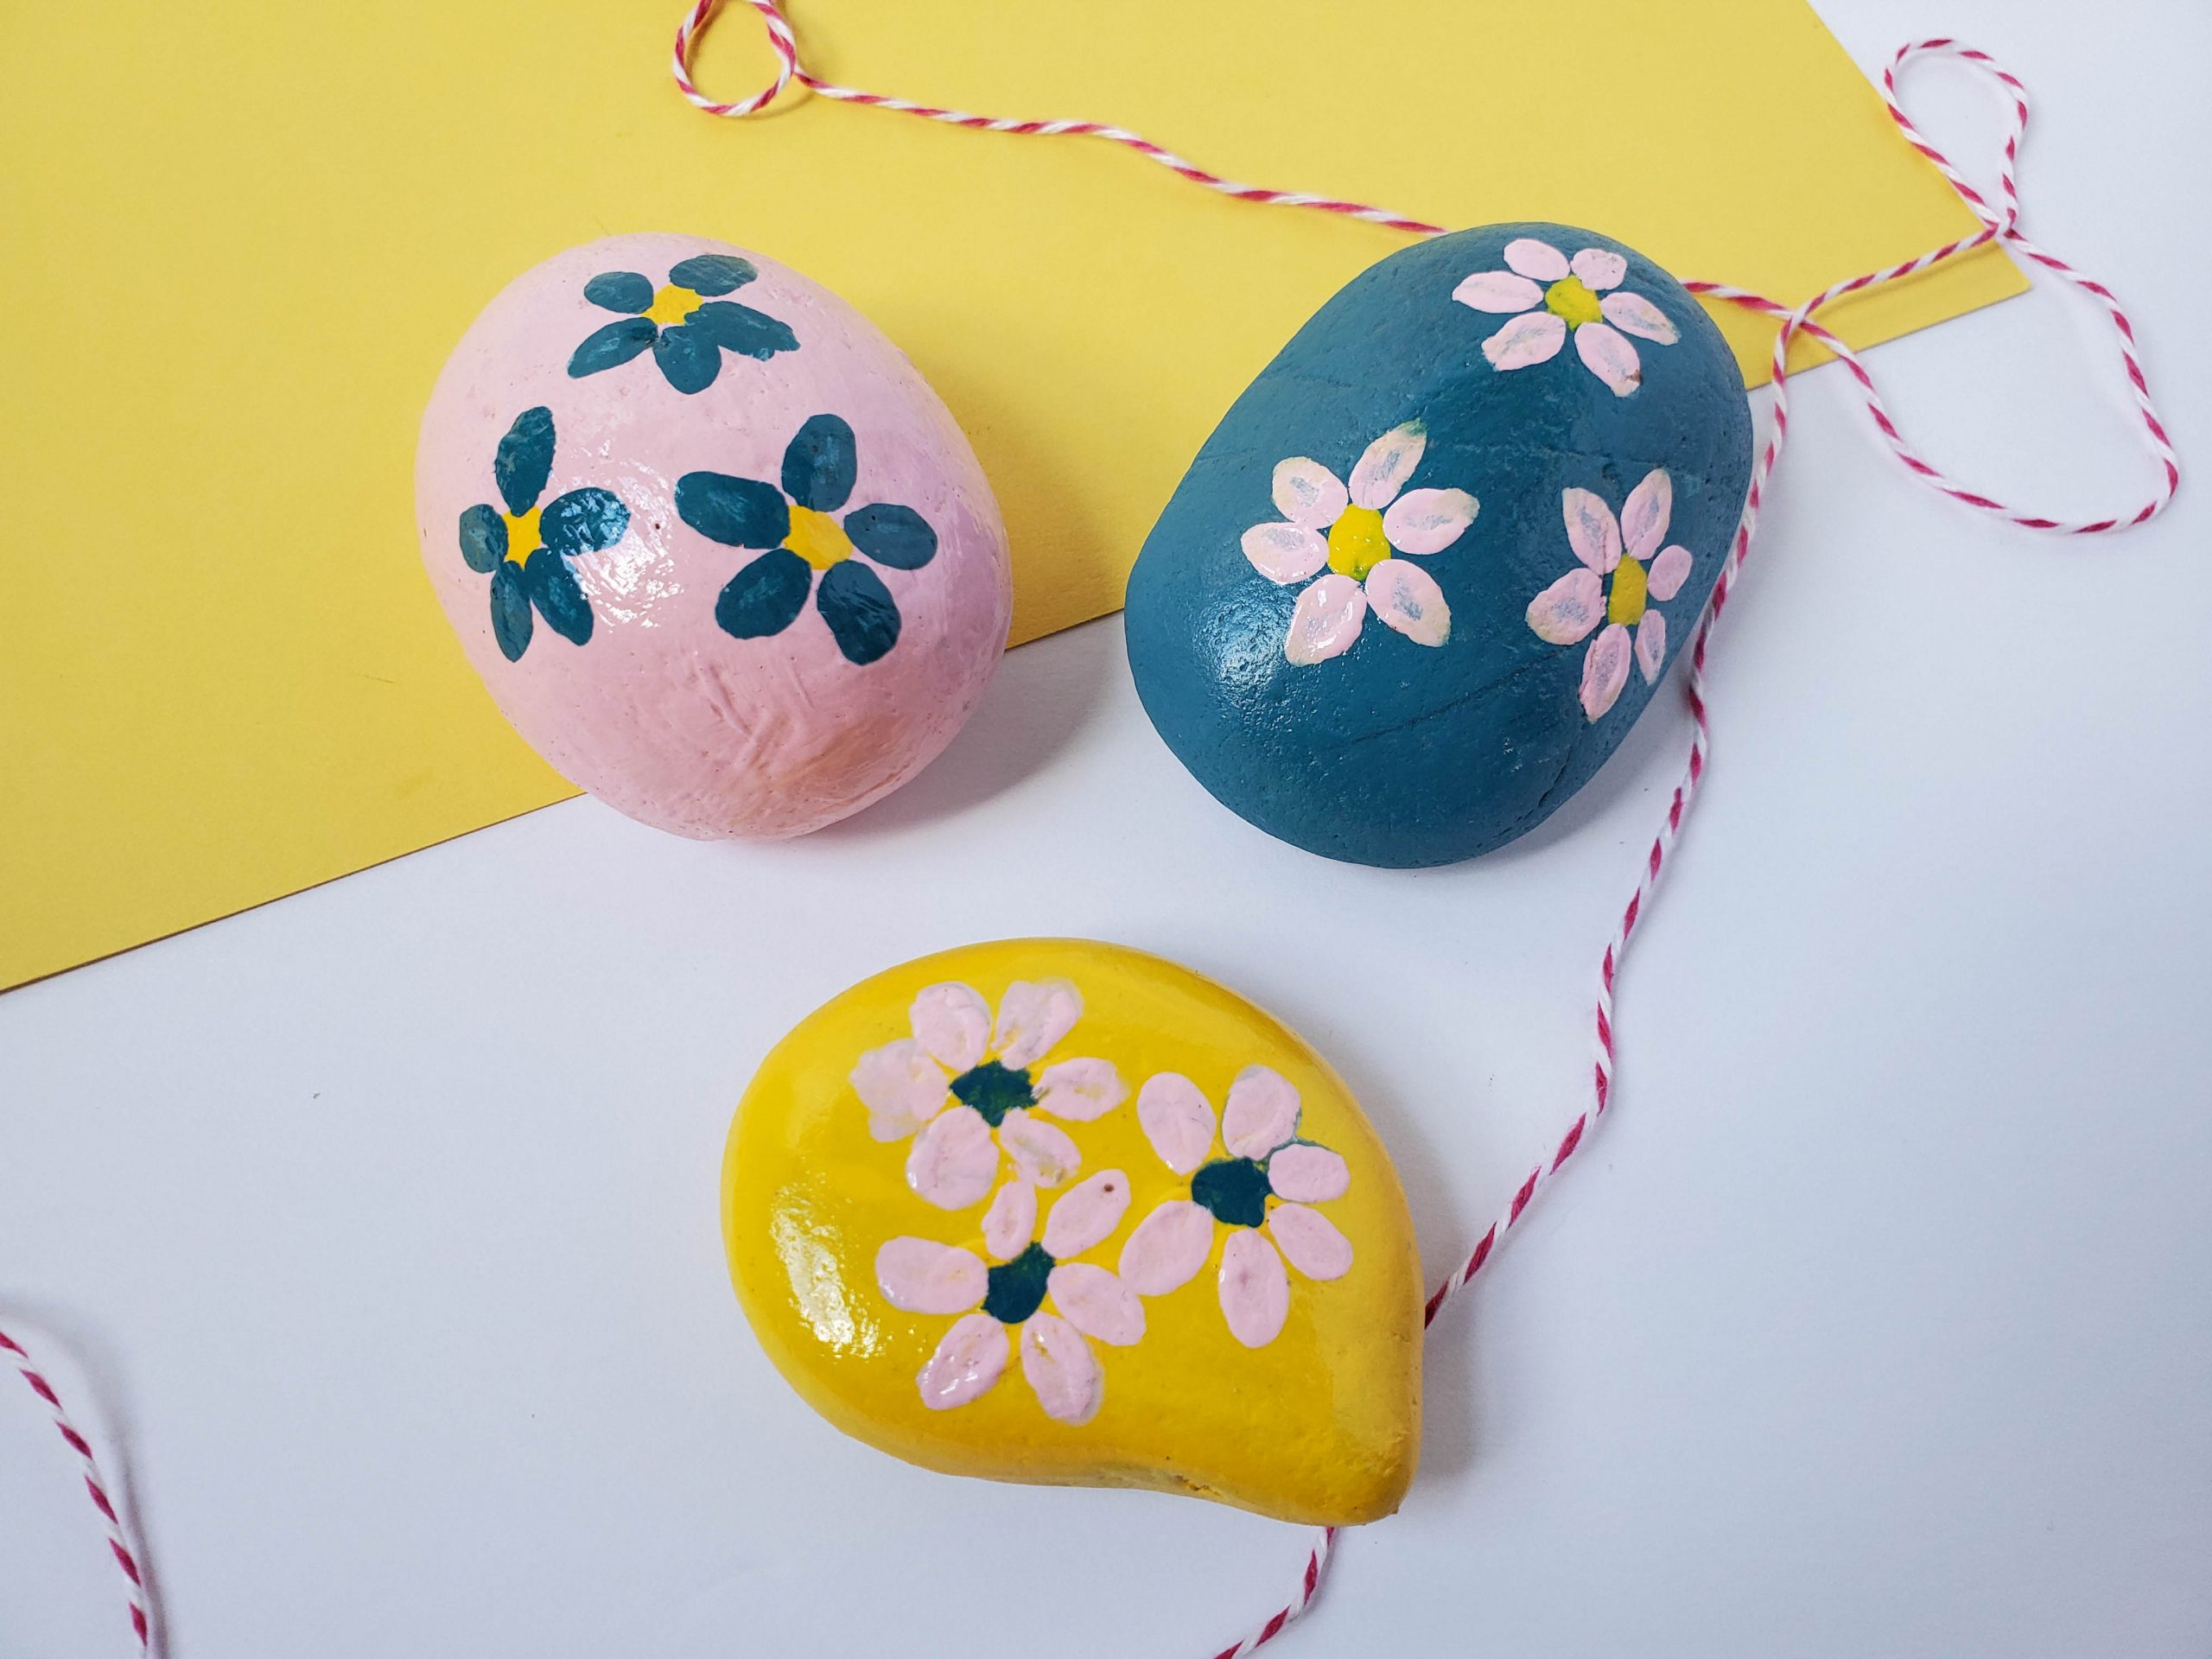 The painted rocks by a yellow piece of paper.